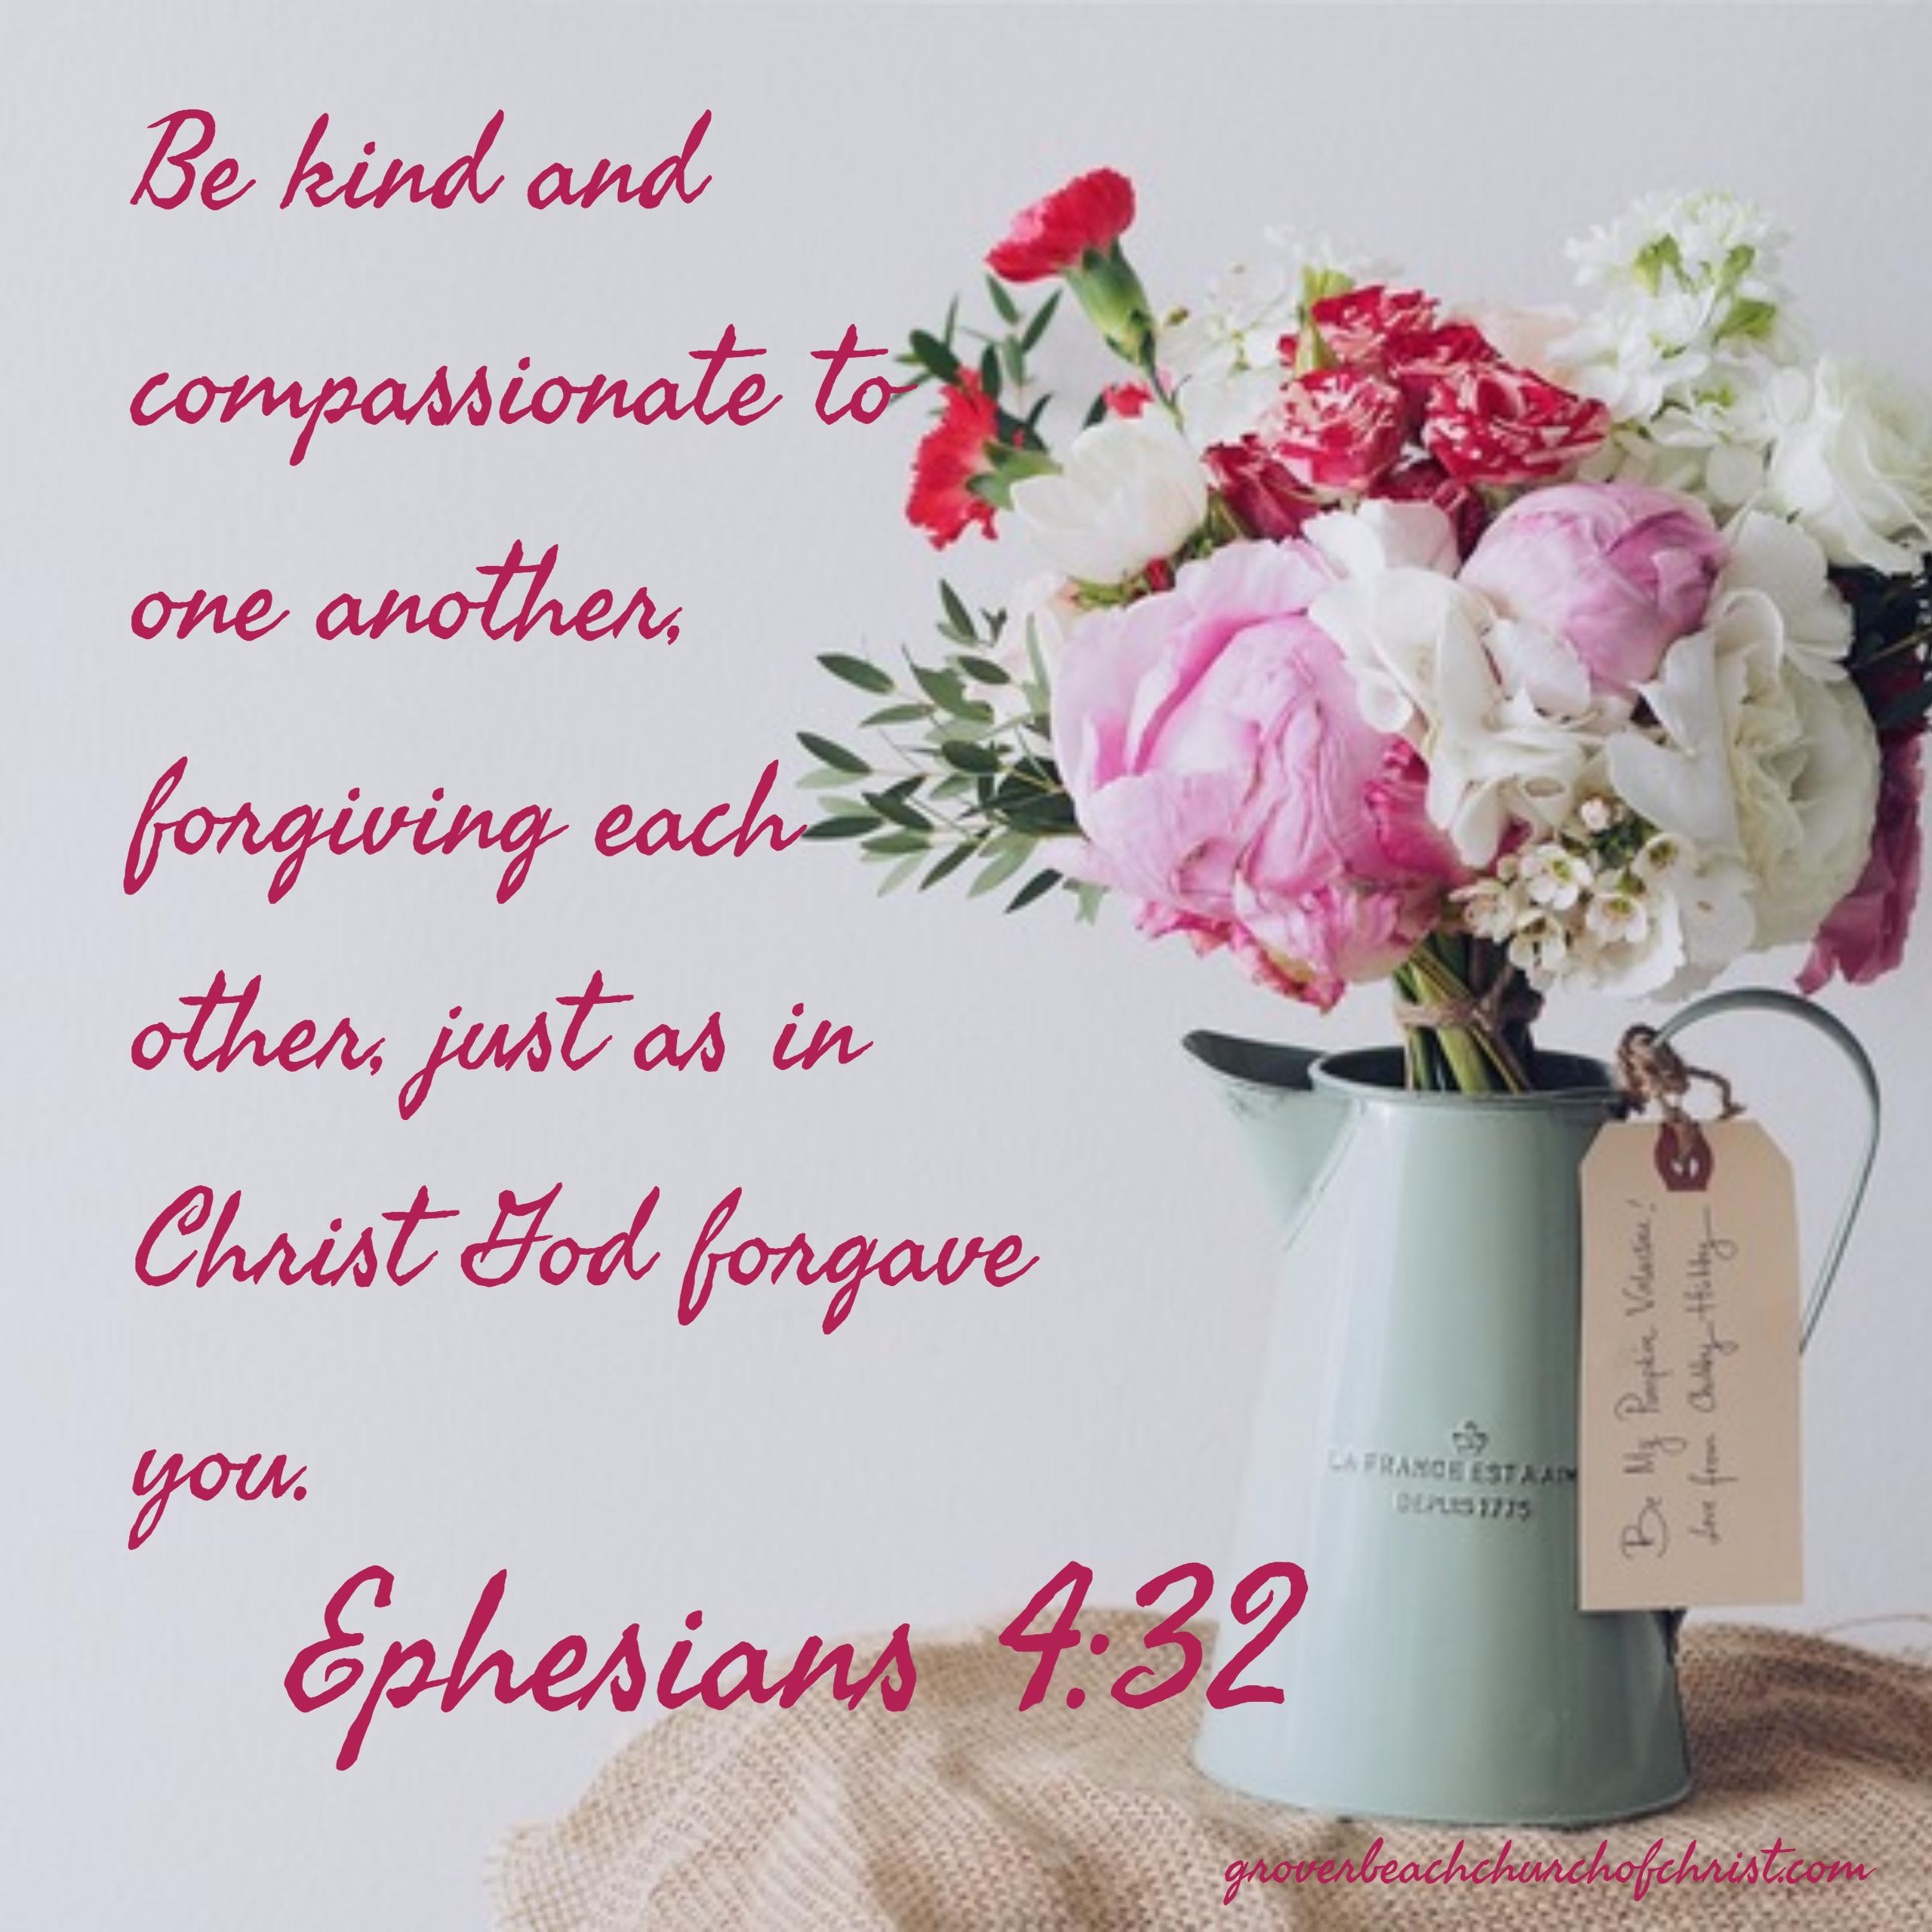 Ephesians 4-32 Be kind